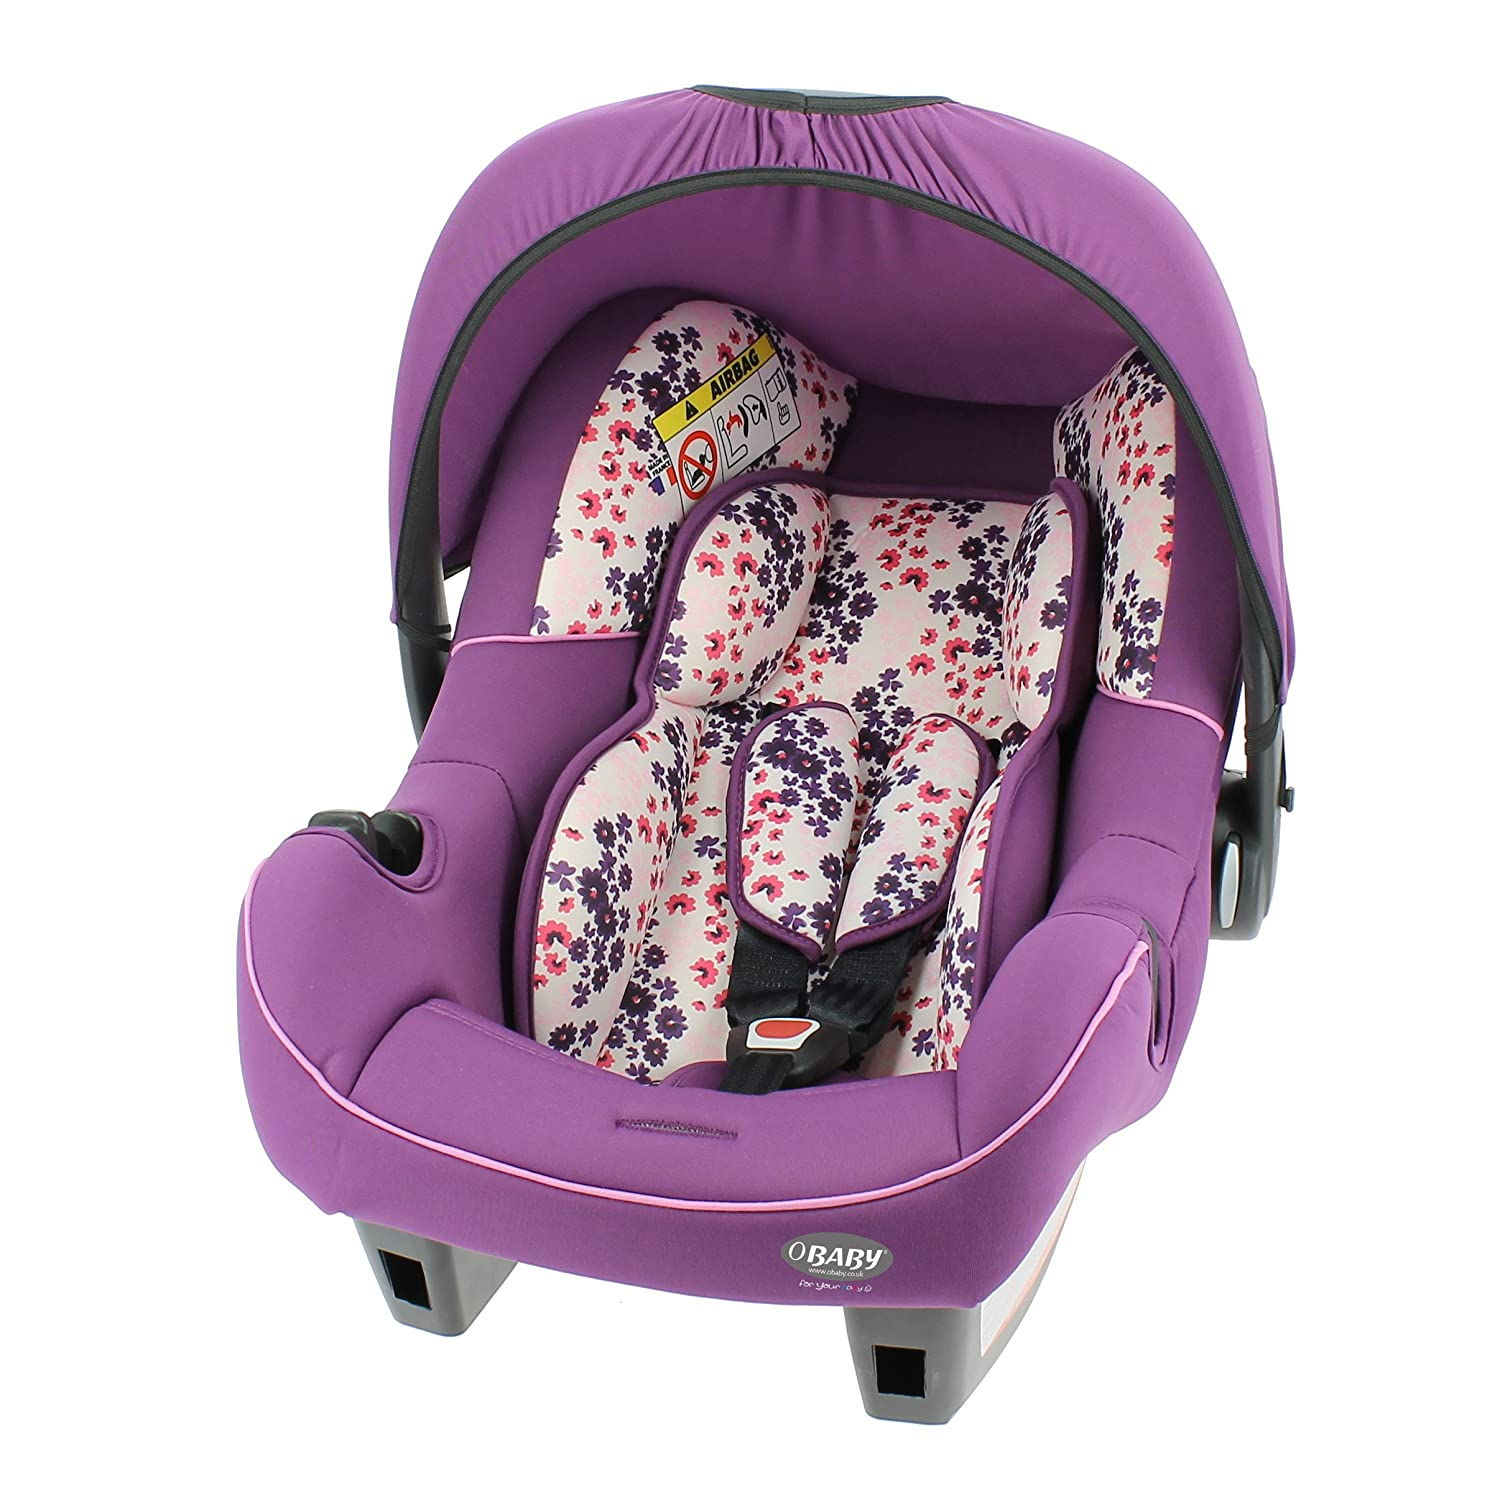 Obaby Group 0+ Infant Car Seat (Little Cutie): Amazon.co.uk: Baby